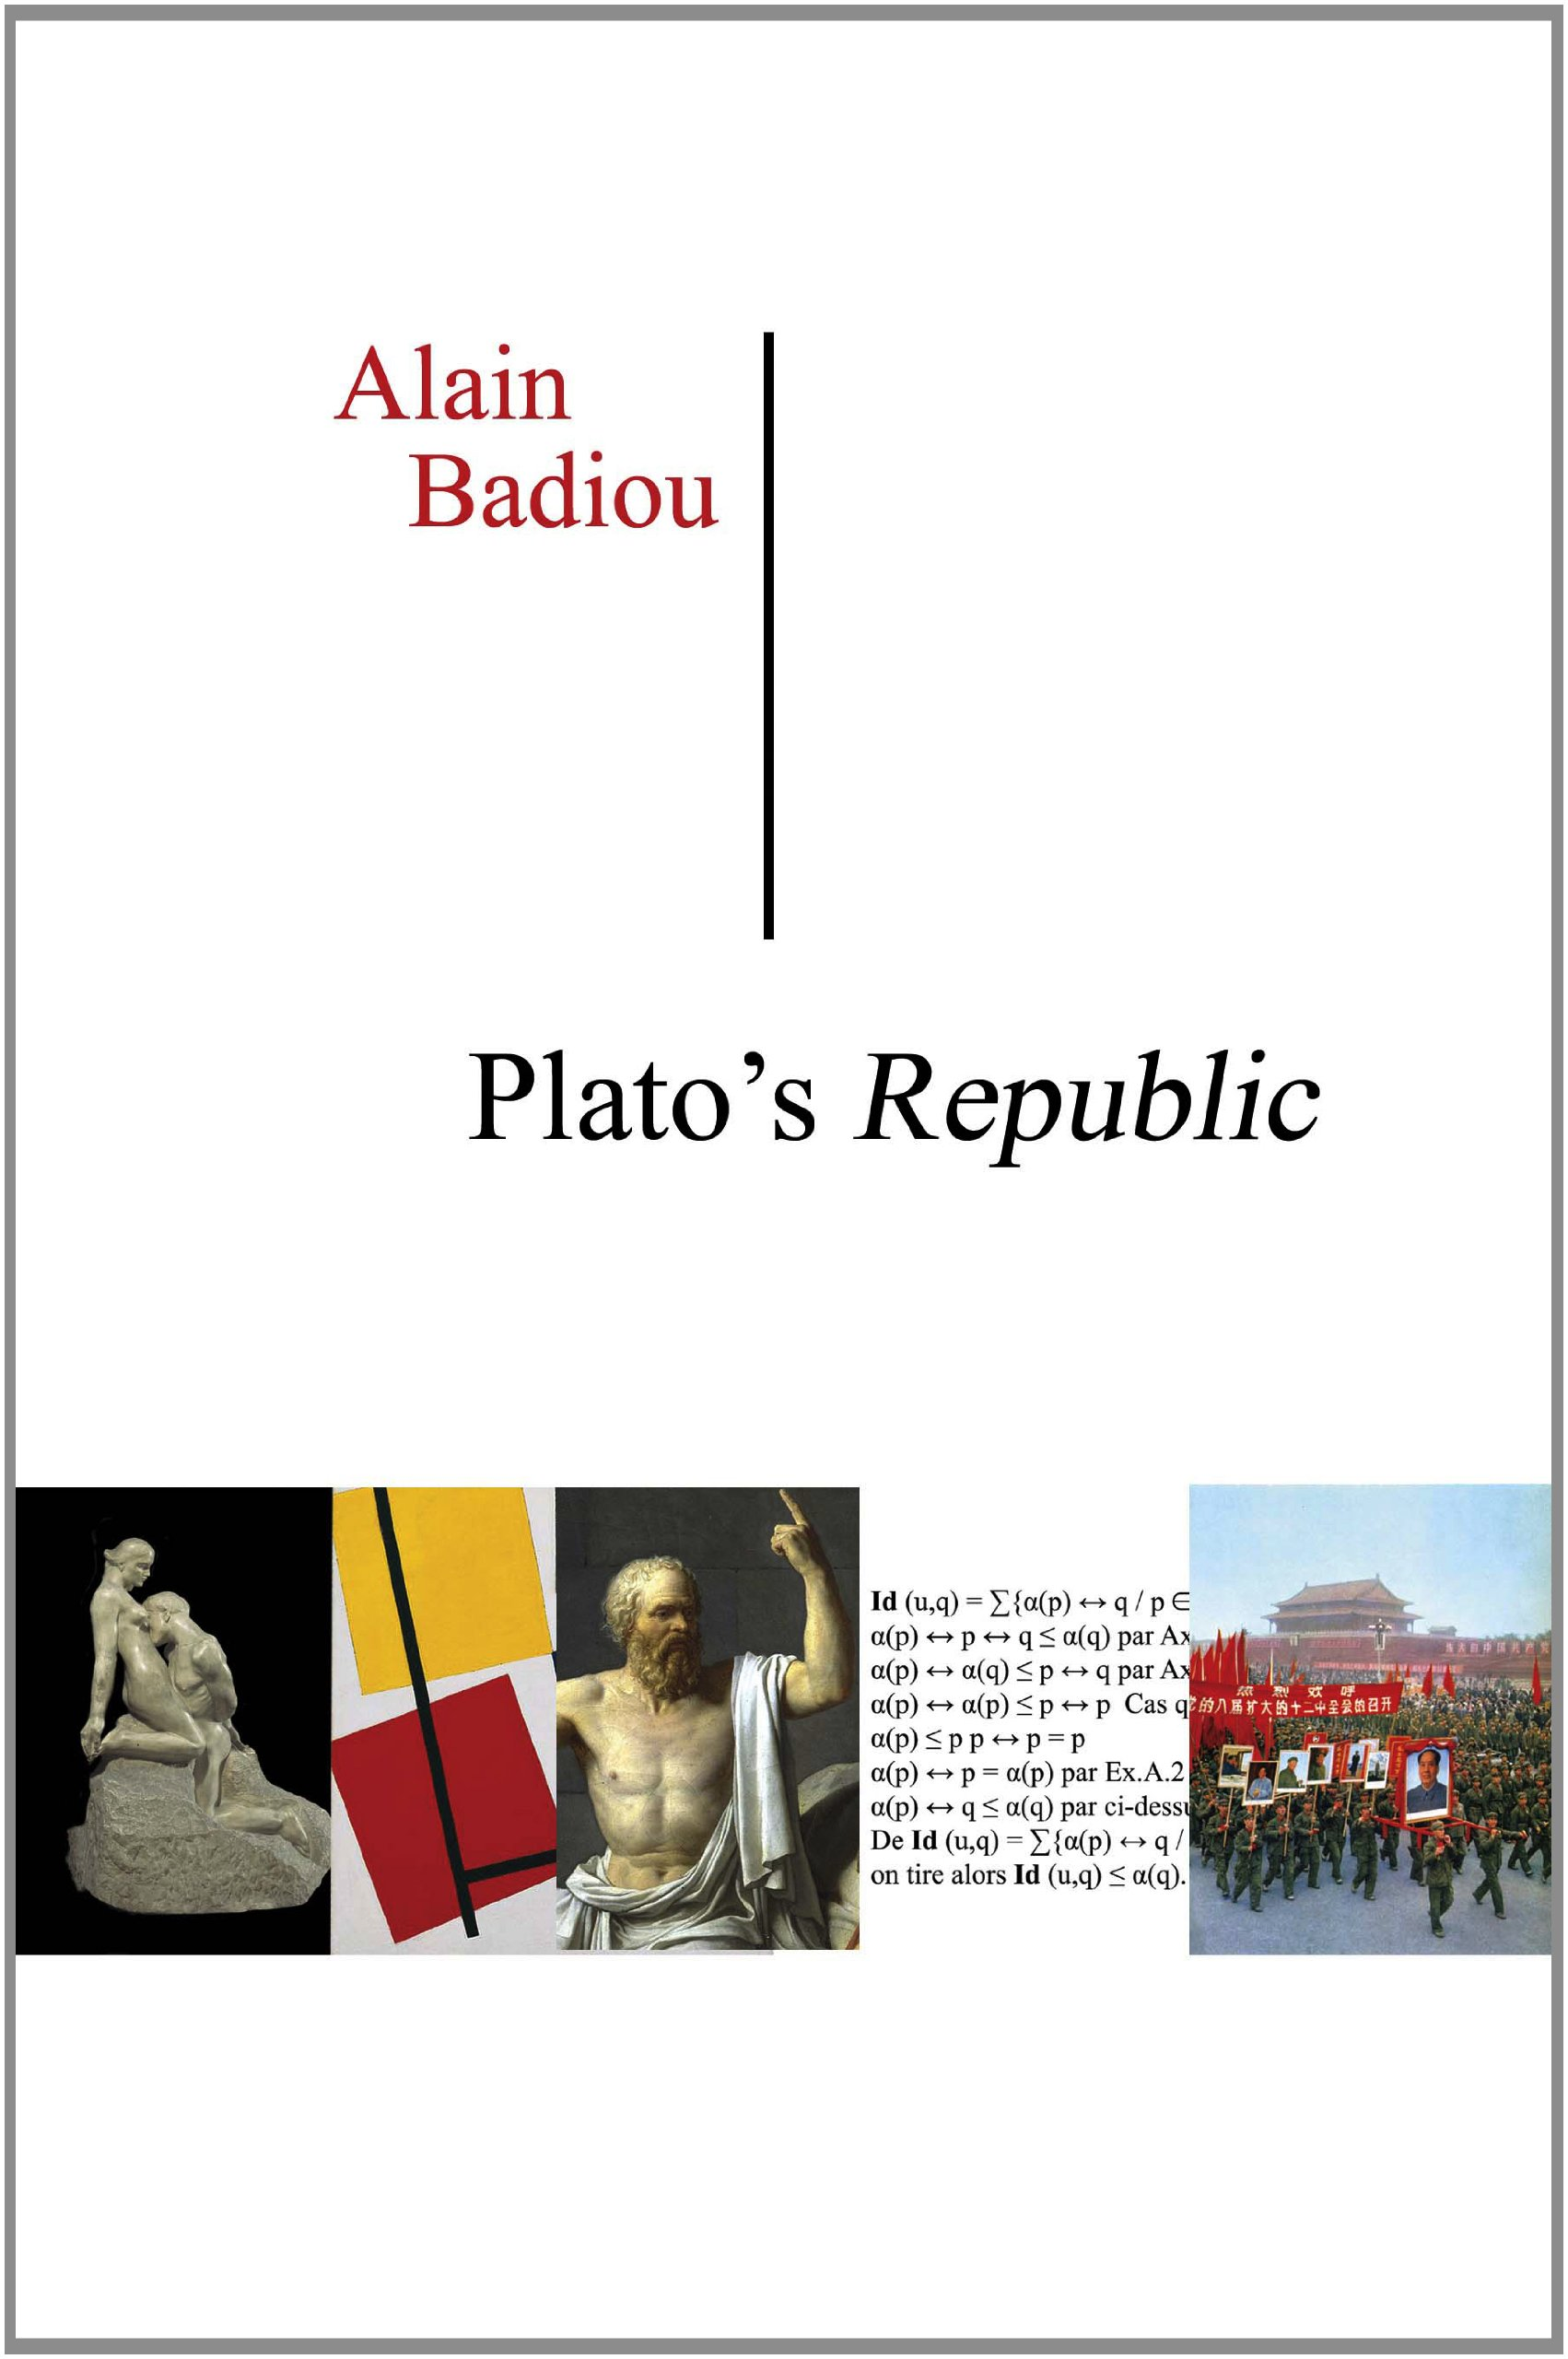 plato s republic a dialogue in sixteen chapters alain badiou plato s republic a dialogue in sixteen chapters alain badiou susan spitzer kenneth reinhard 9780231160162 com books